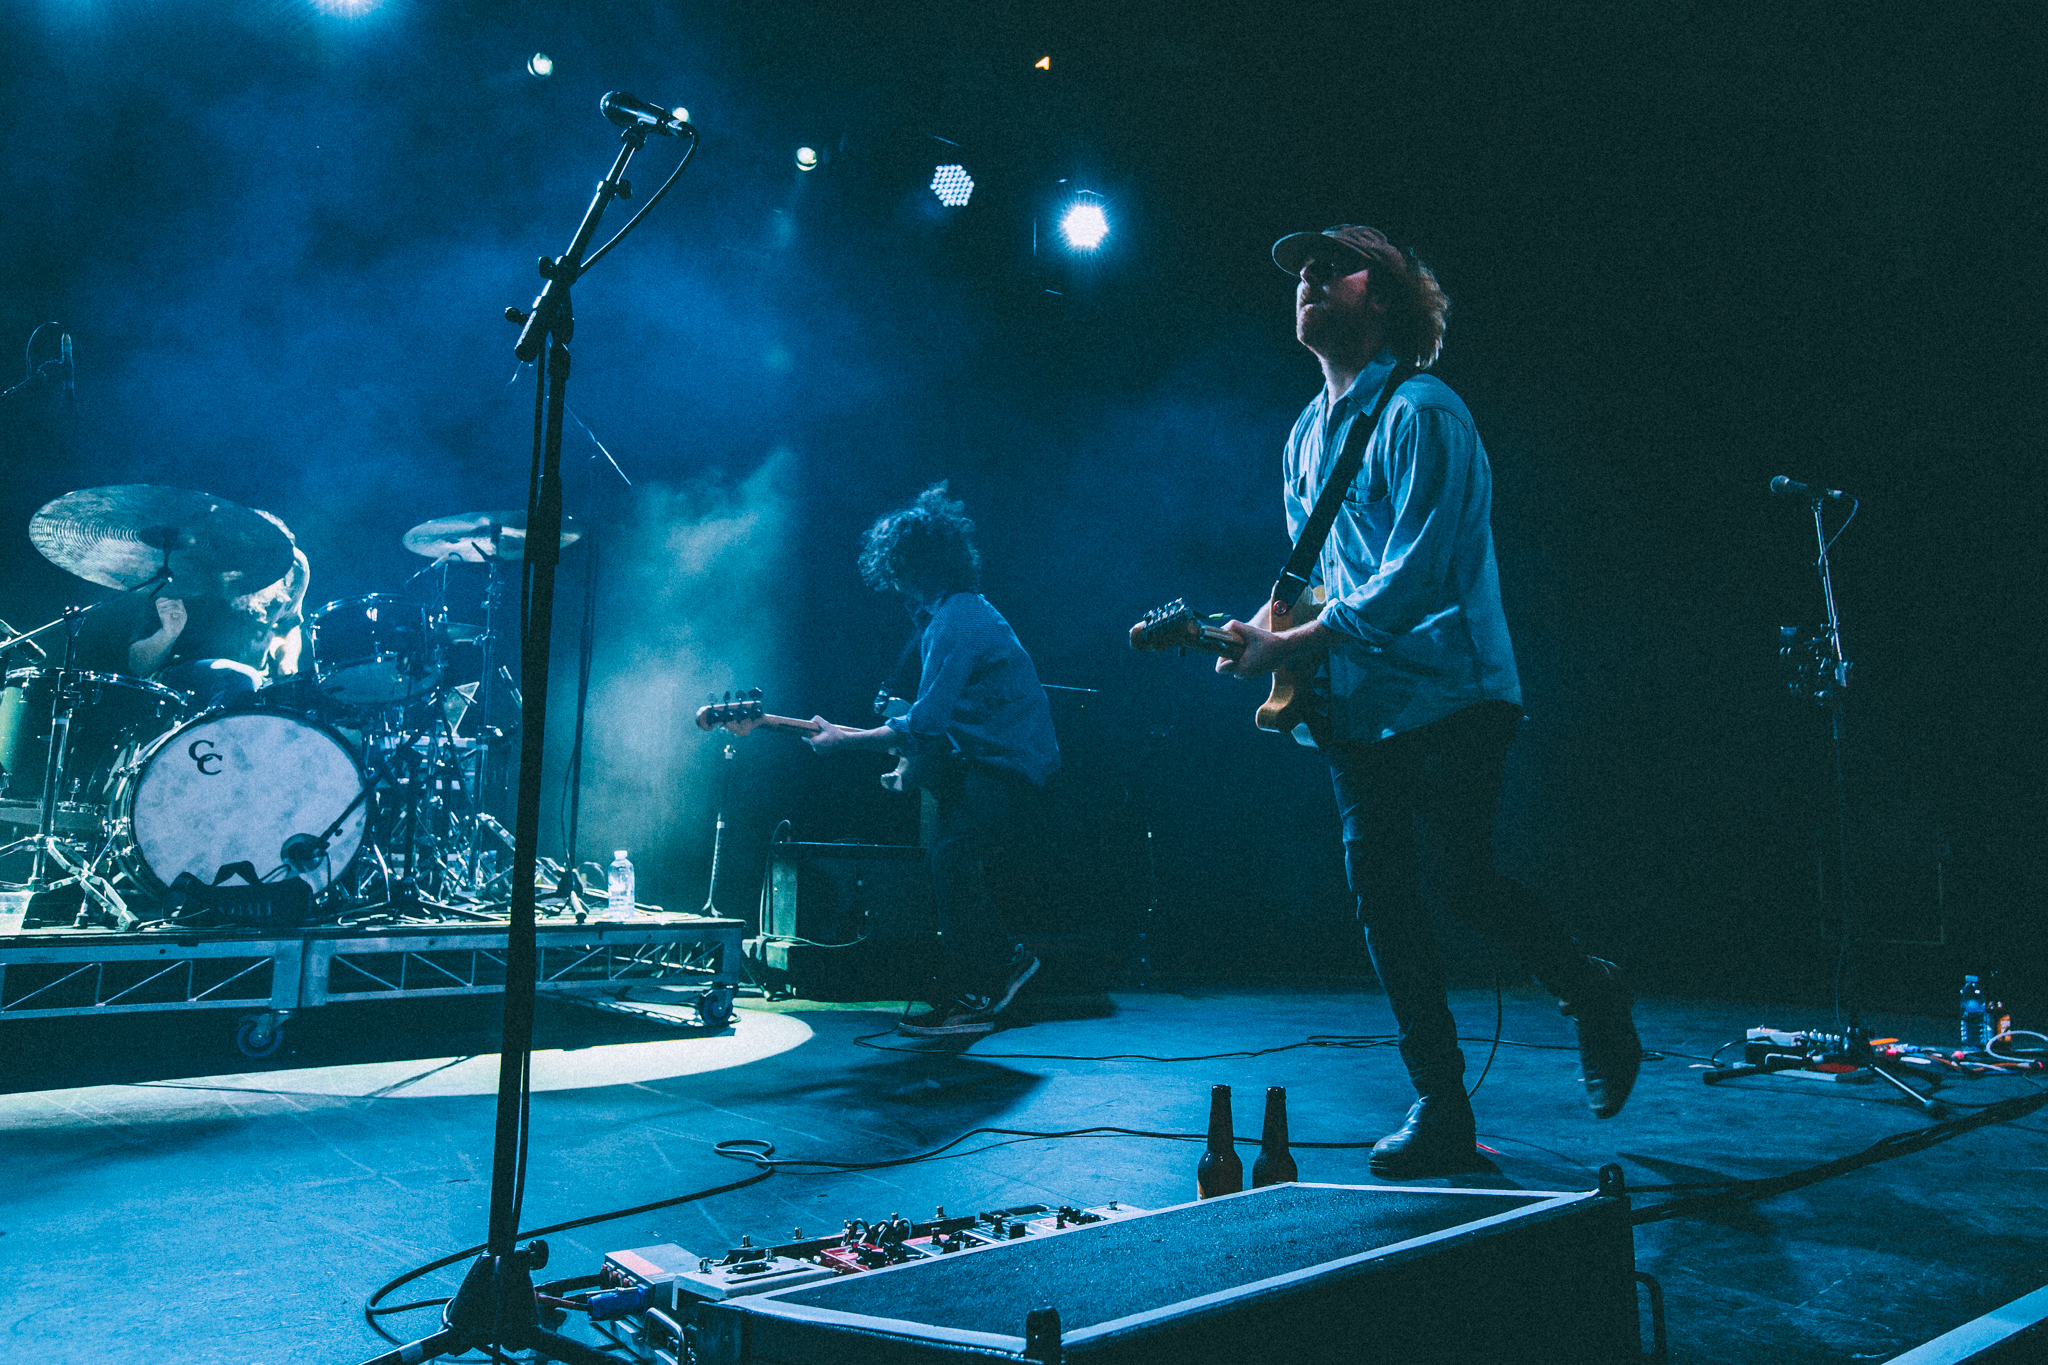 Mitch Lowe Photo - The Wombats - Riverstage-36.jpg